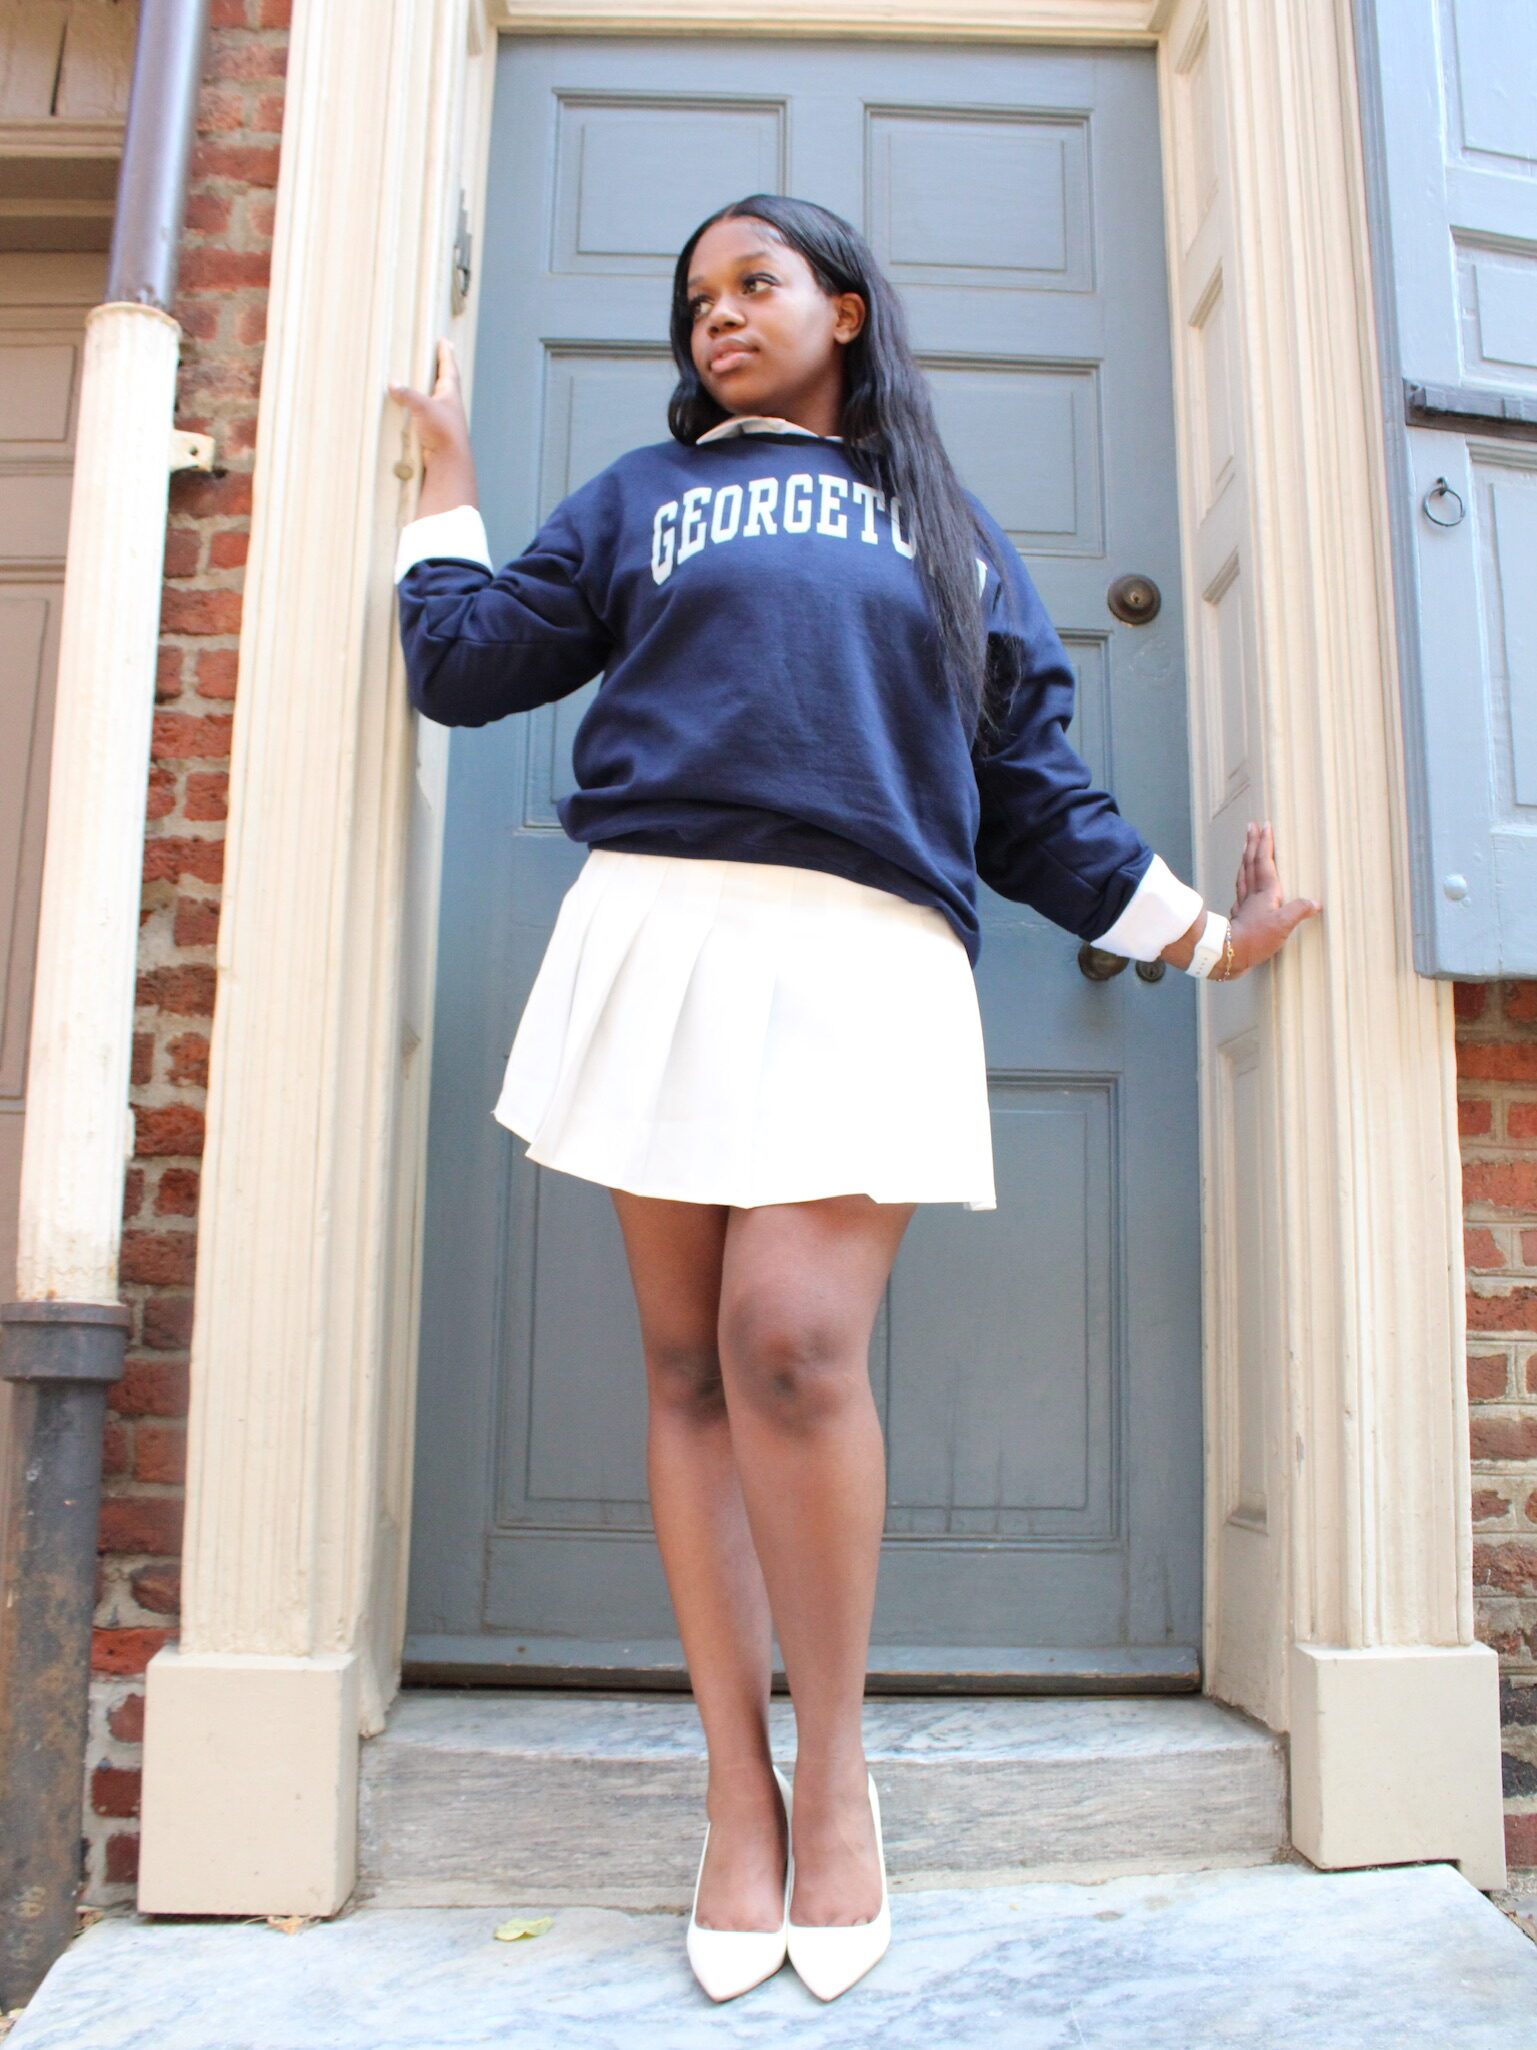 Rams-Lyne stands in front of a sage green door with her hands on the frame. She is looking off camera to the left. She is wearing white heels, a white tennis skirt and a navy Georgetown sweatshirt.